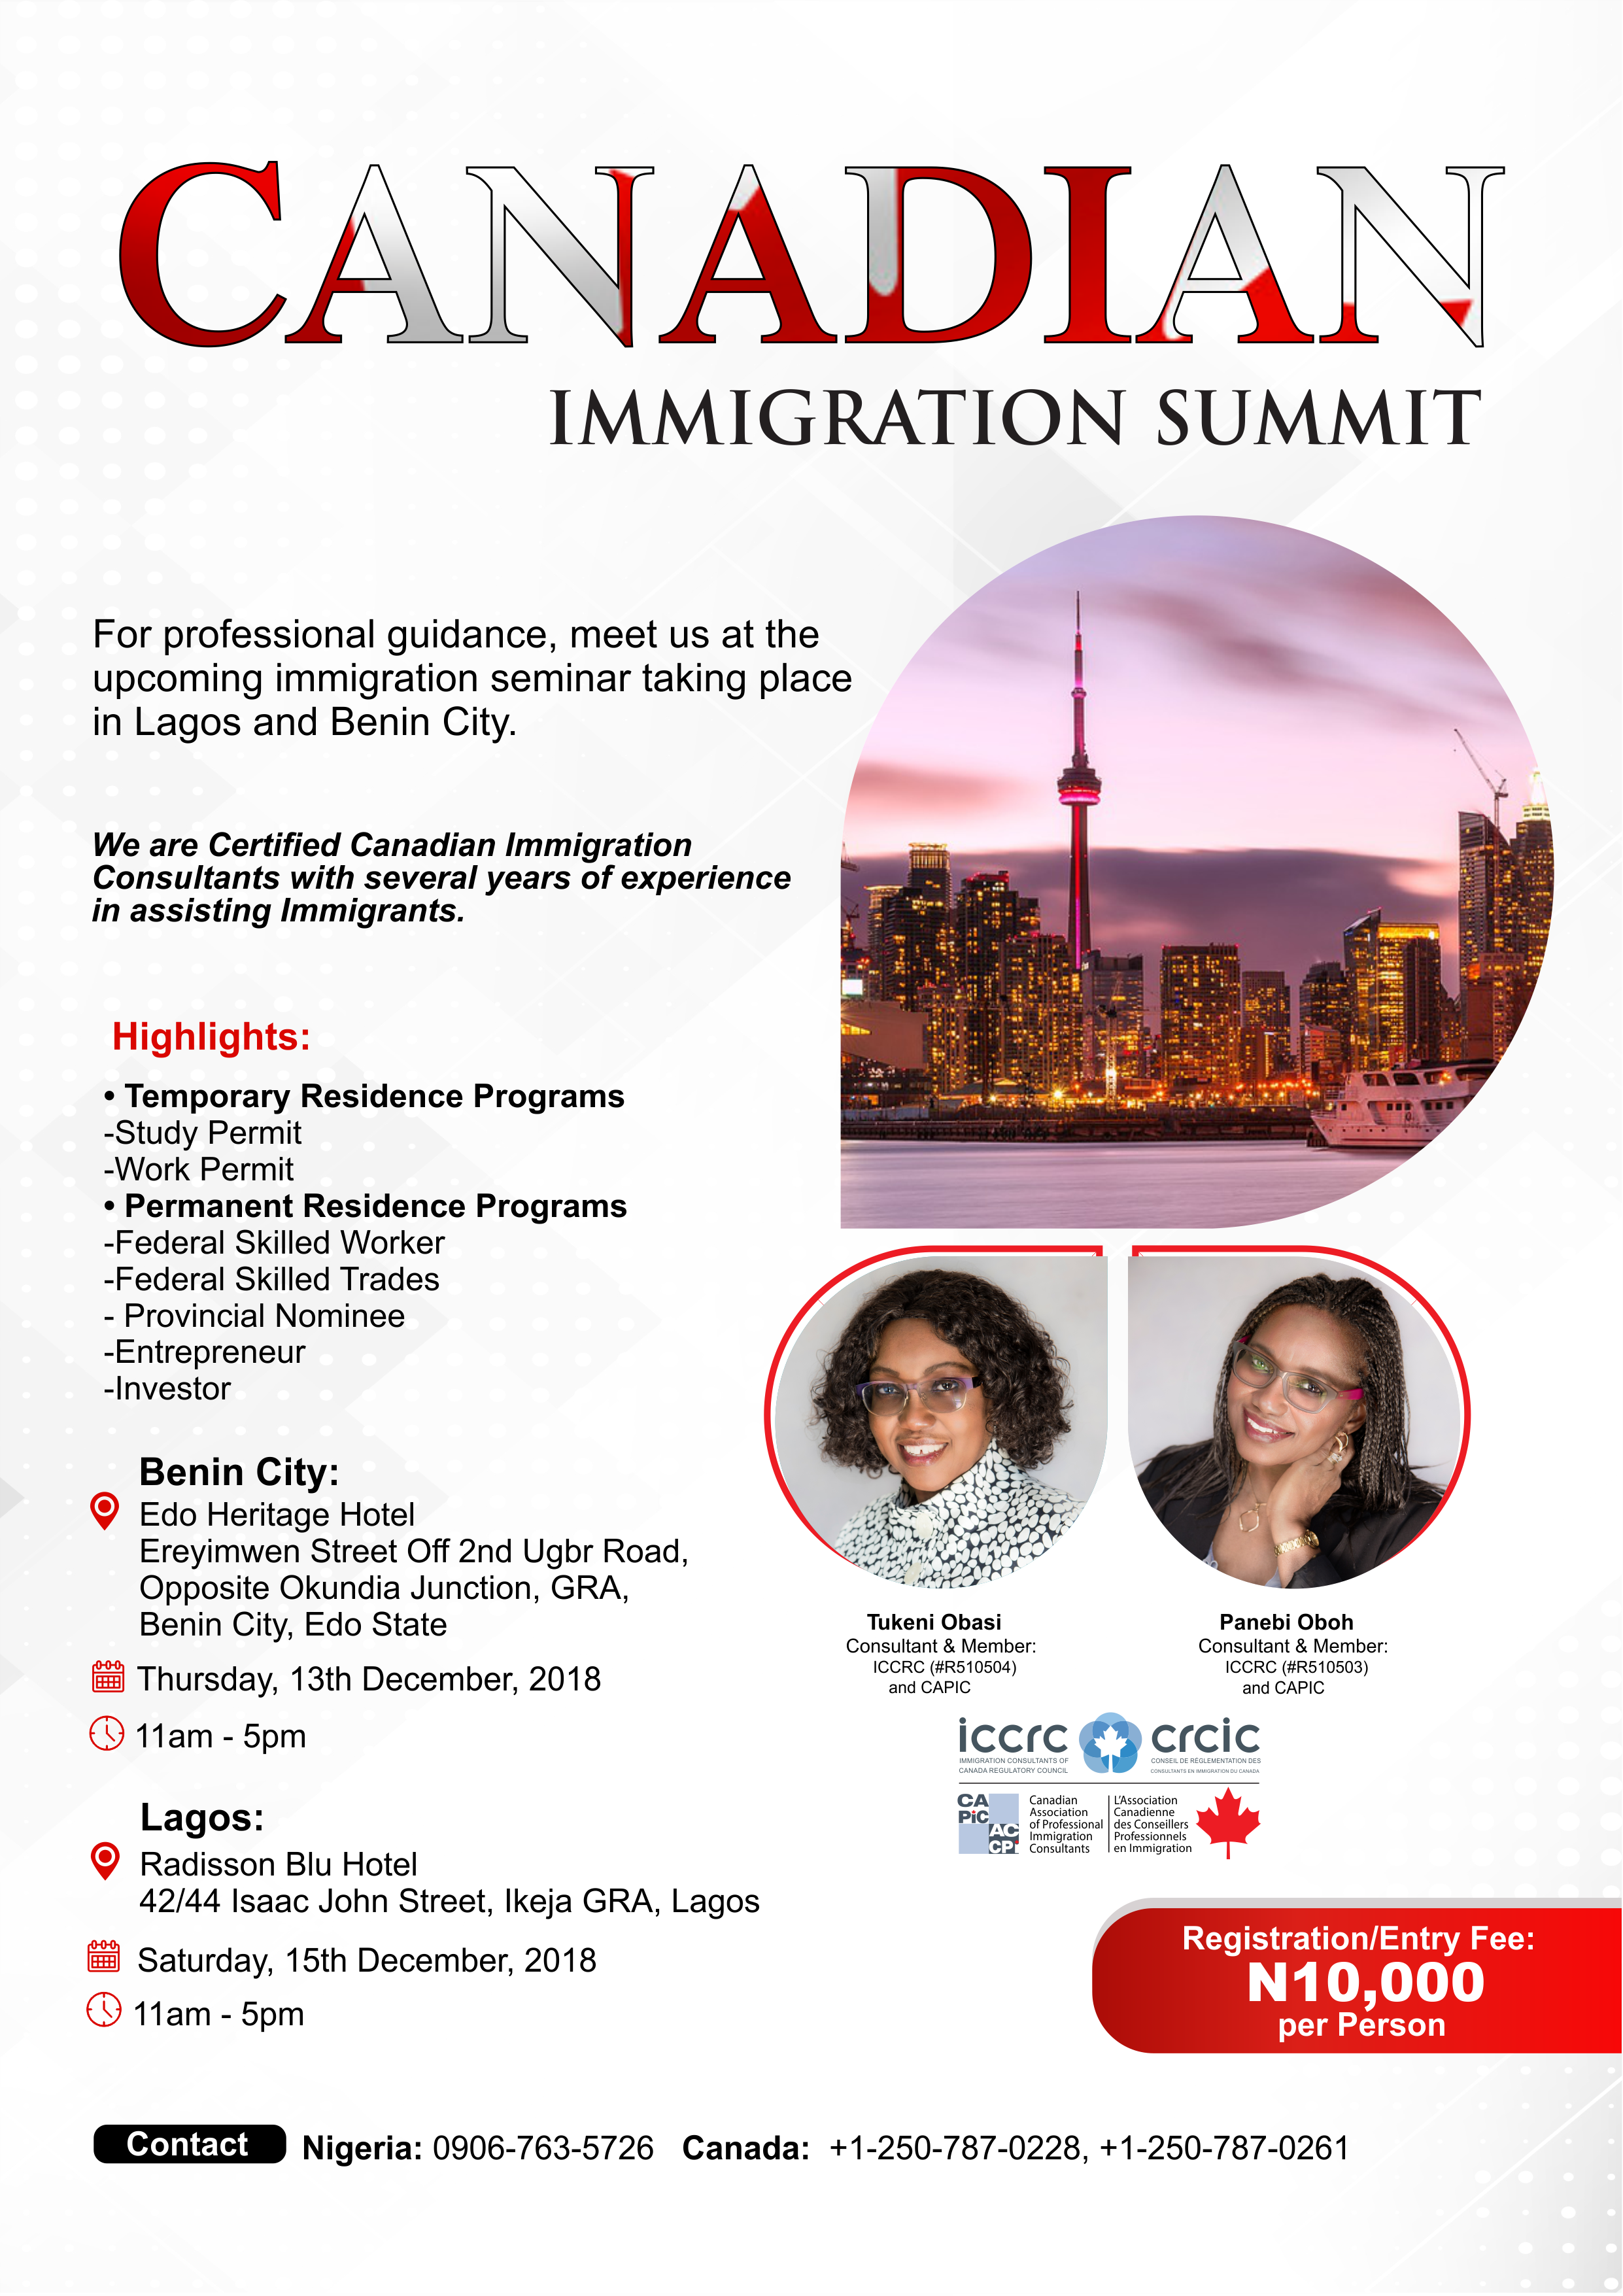 Canada Immigration Summit